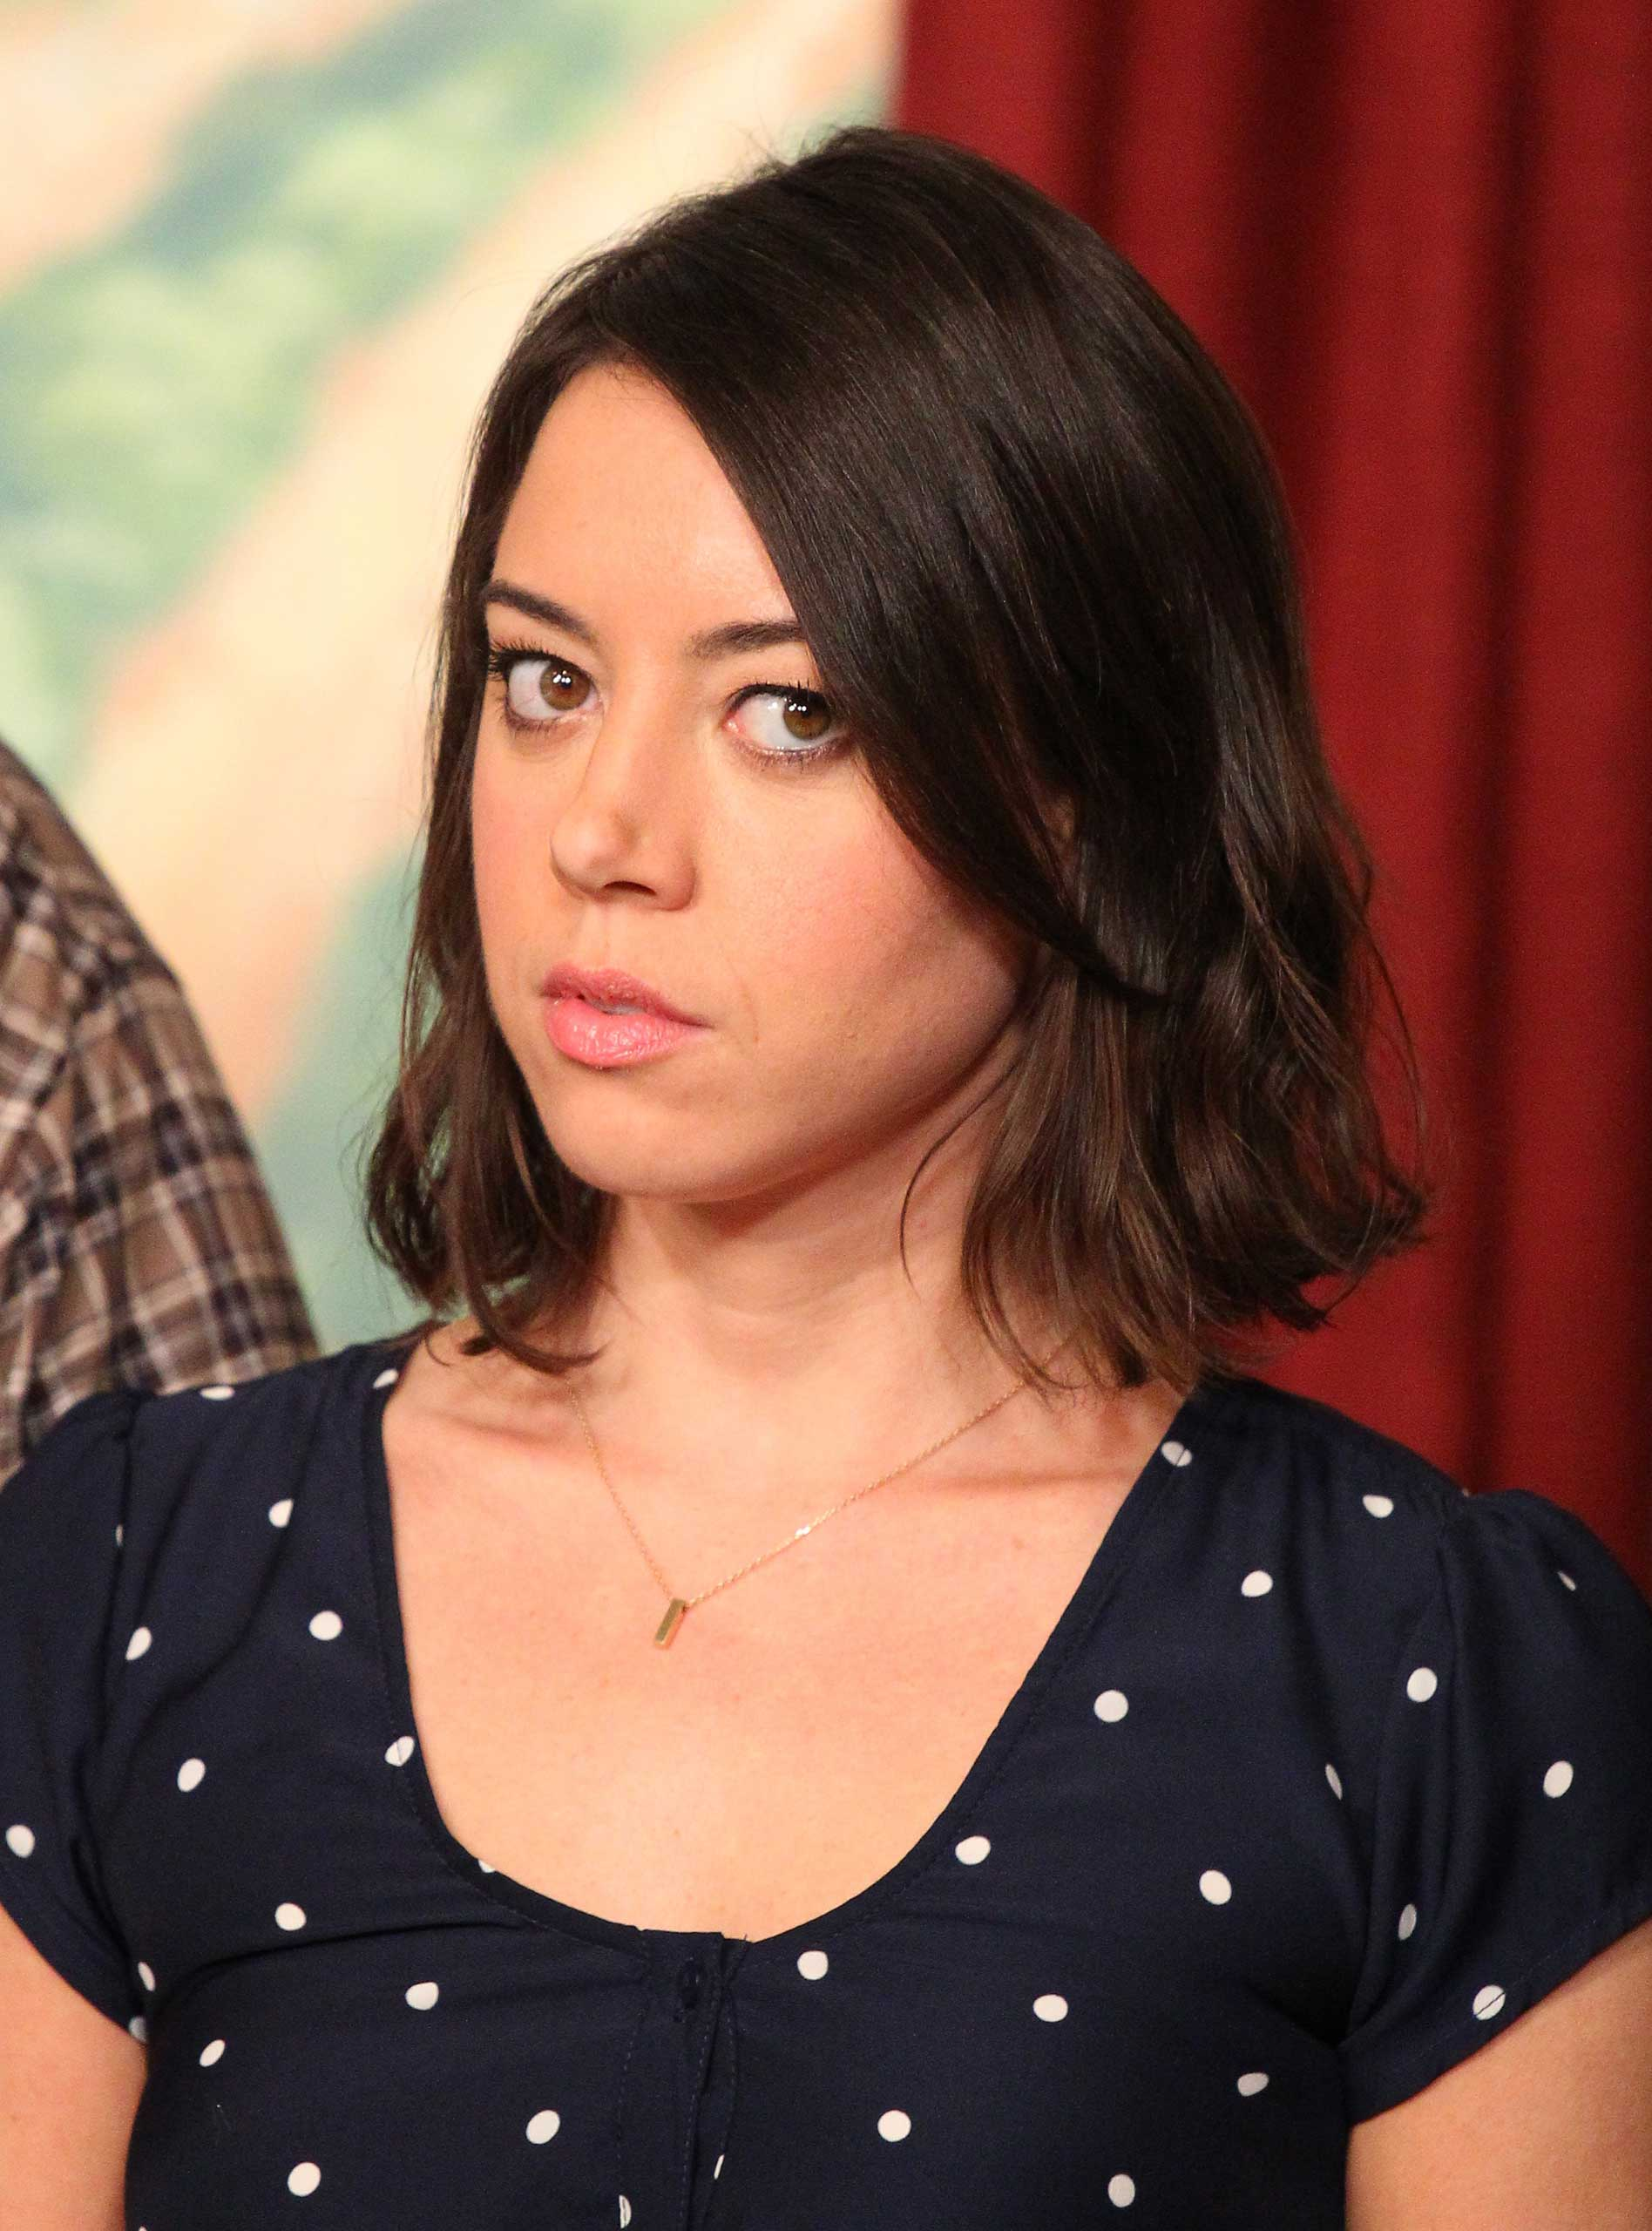 STUDIO CITY, CA - OCTOBER 16: Aubrey Plaza attends the NBC 'Parks And Recreation' 100th Episode Celebration held at CBS Studios - Radford on October 16, 2013 in Studio City, California. (Photo by JB Lacroix/WireImage)